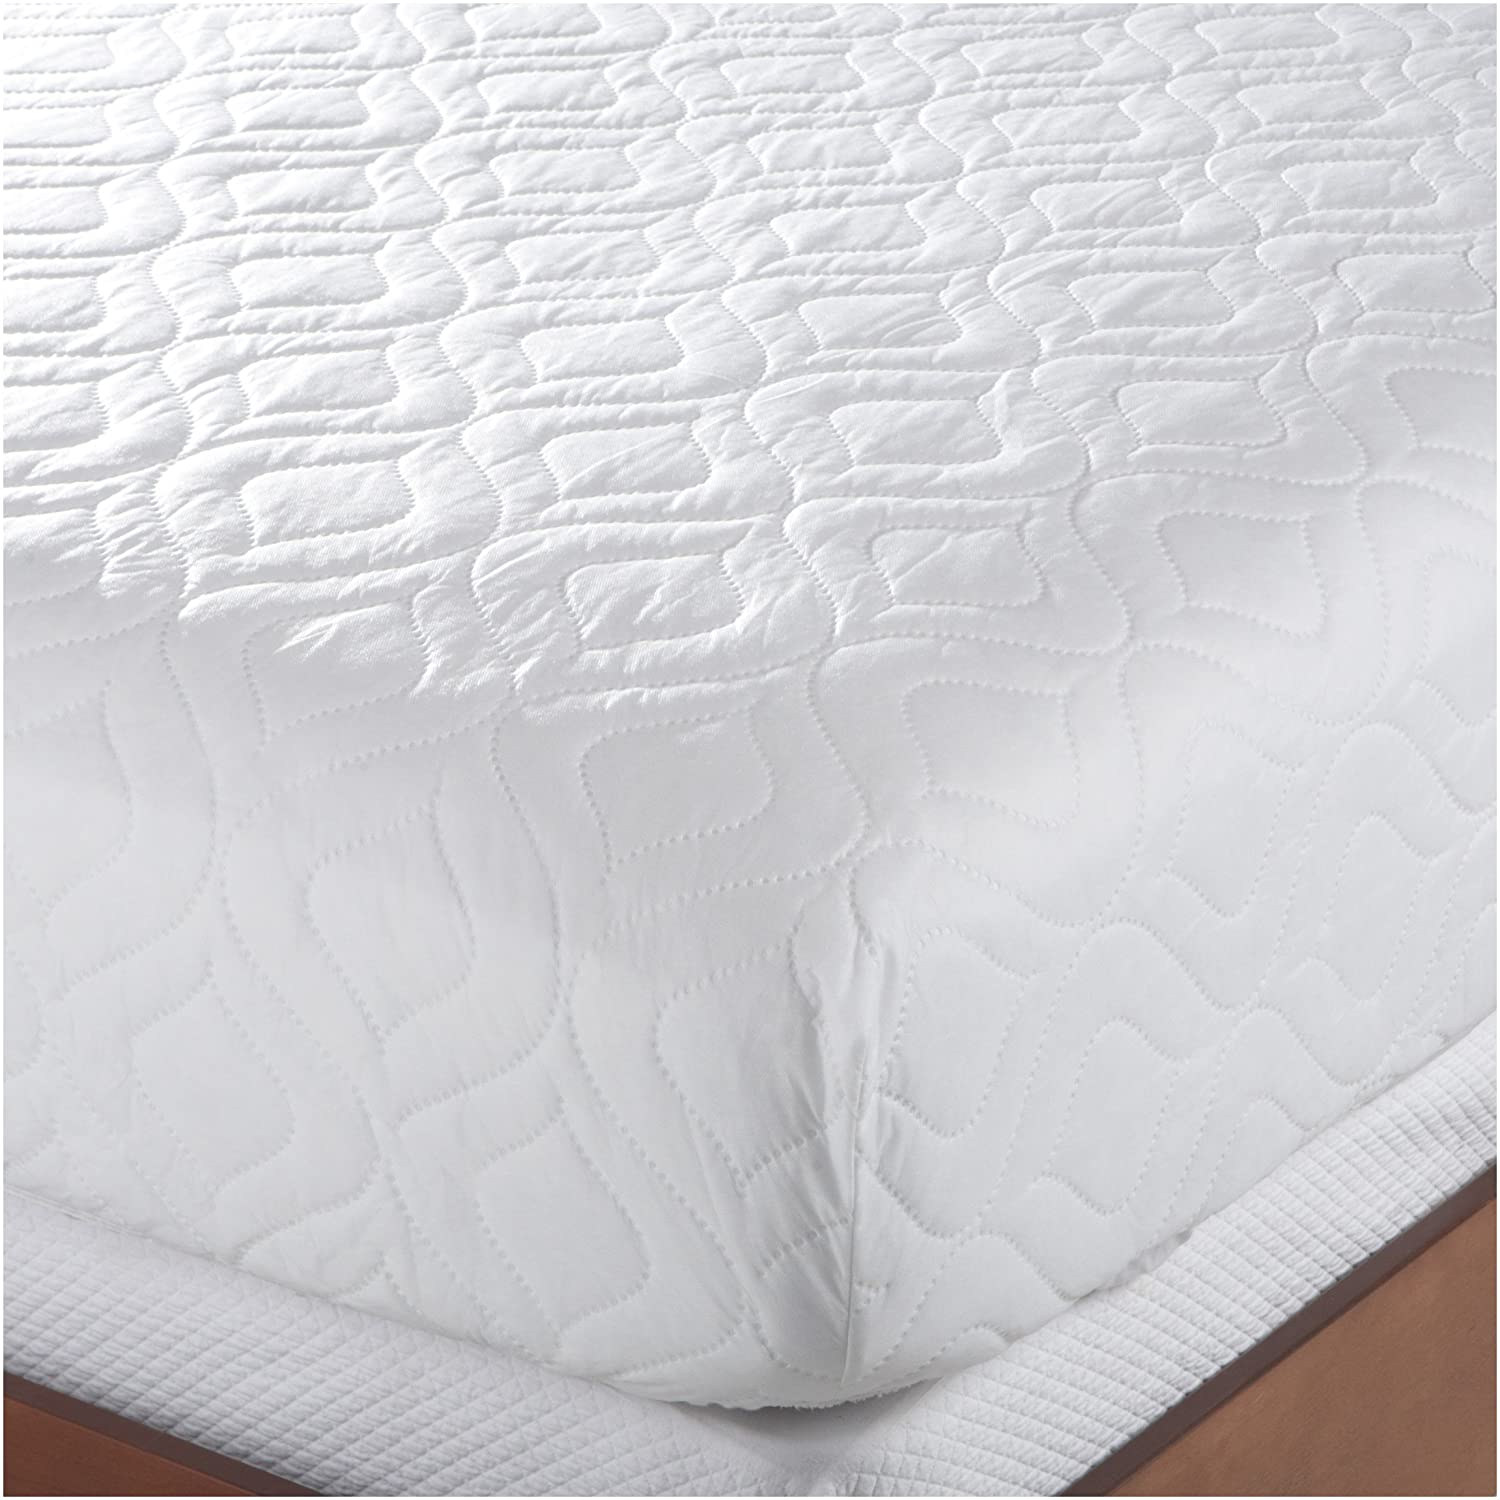 nuform product home today quilted overstock shipping plush garden pillow foam mattress top size free topper inch queen